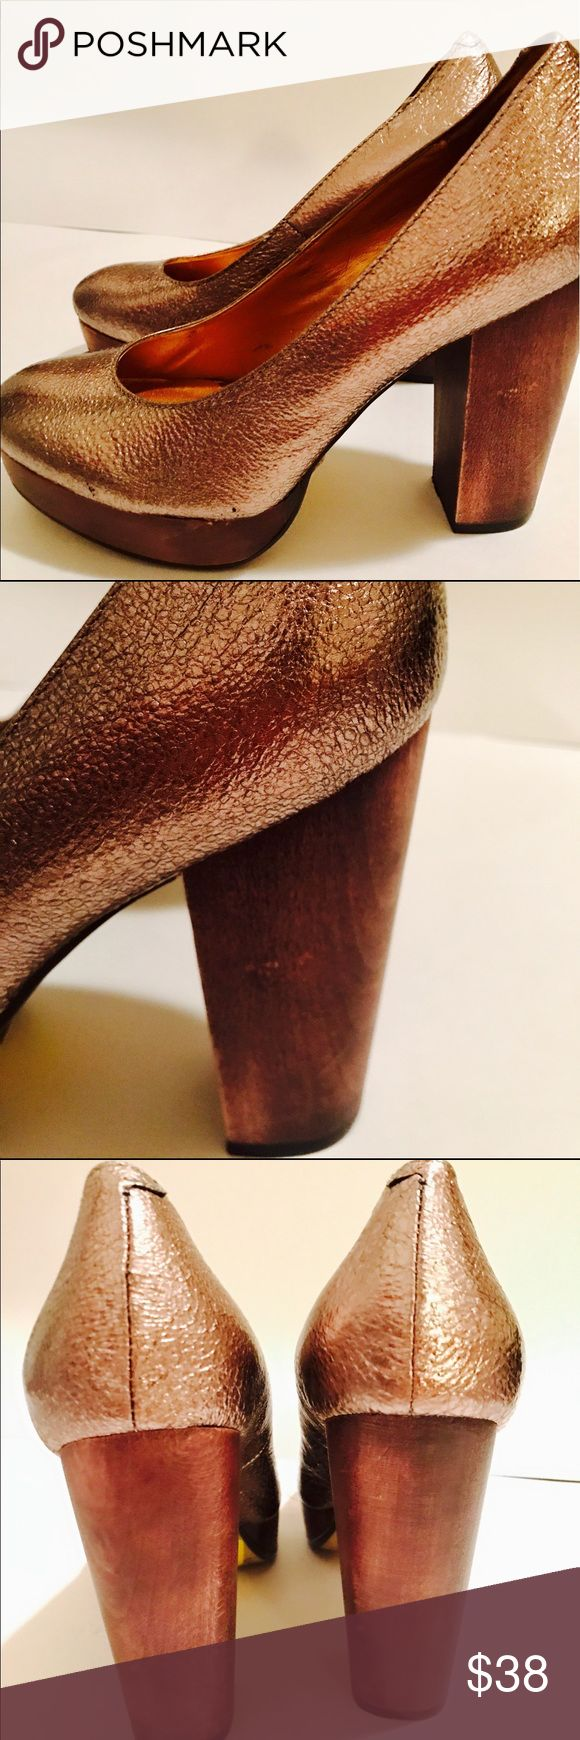 "Seychelles Copper Pump Round Toe / like New! Seychelles Copper Pump Round Toe / like New! / 4"" heel Seychelles Shoes Heels"